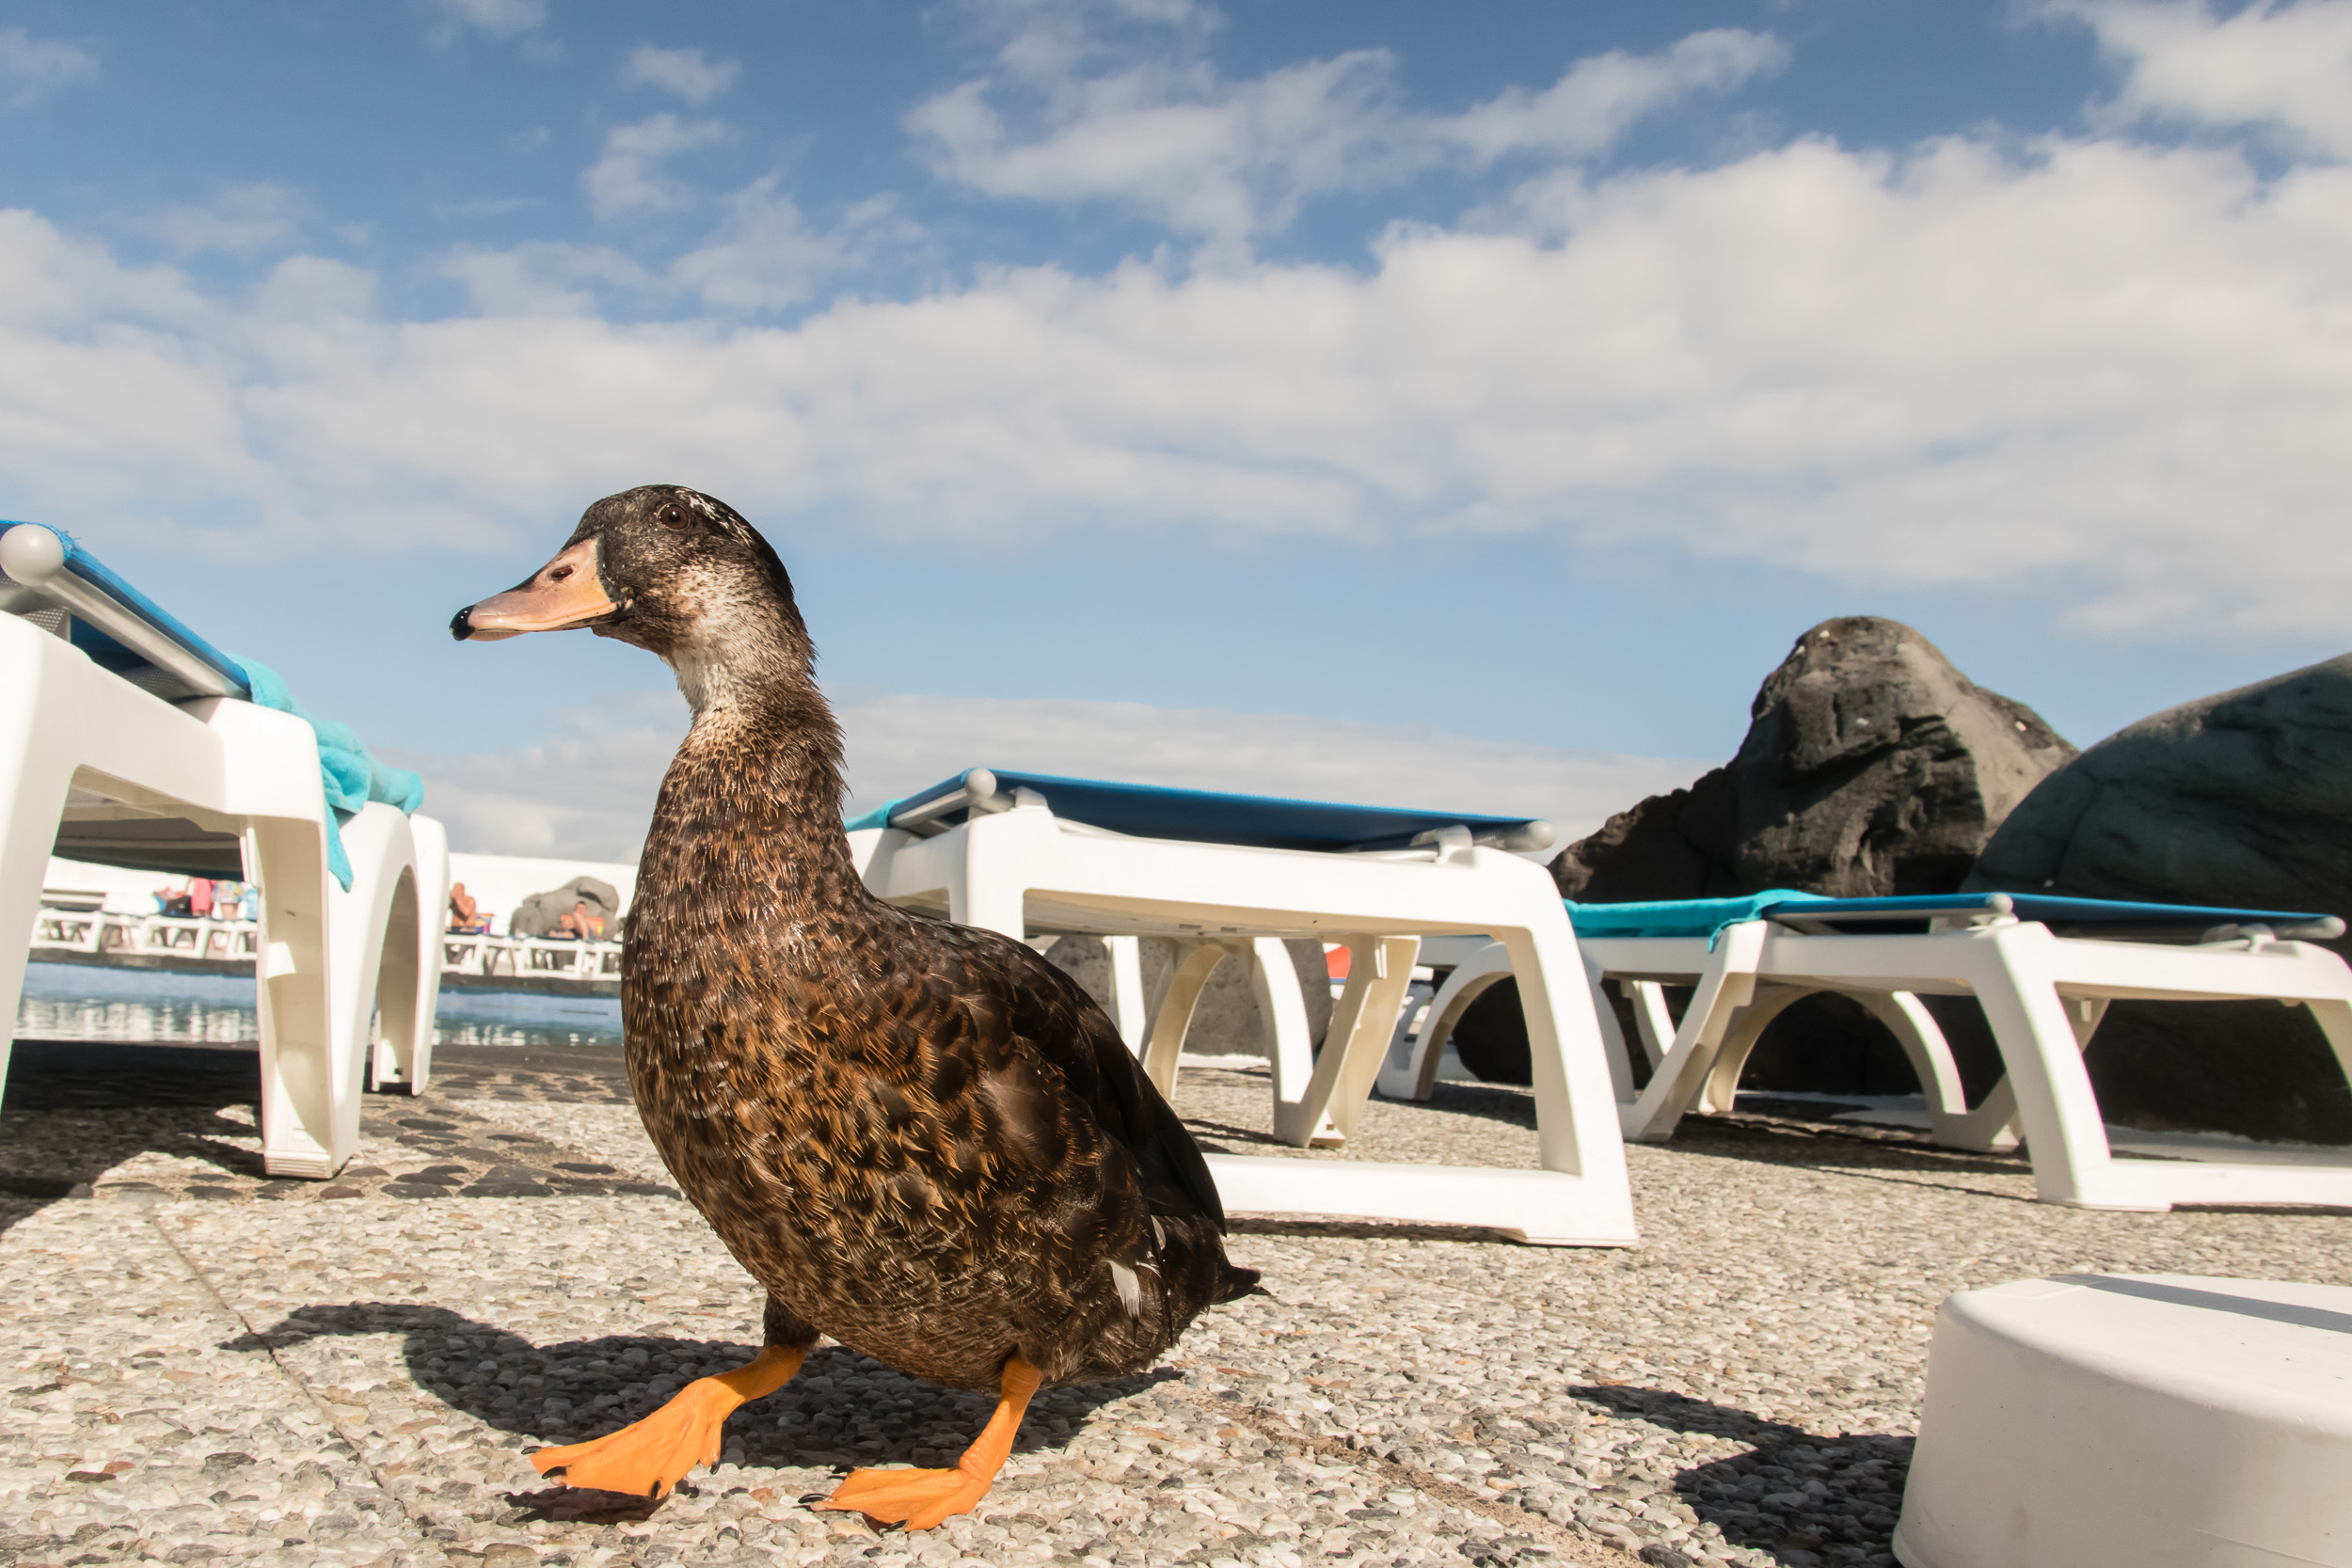 Here's a friendly duck that was swimming at the sea water pools of Lago Martiánez. It allowed me to follow him and take this picture.